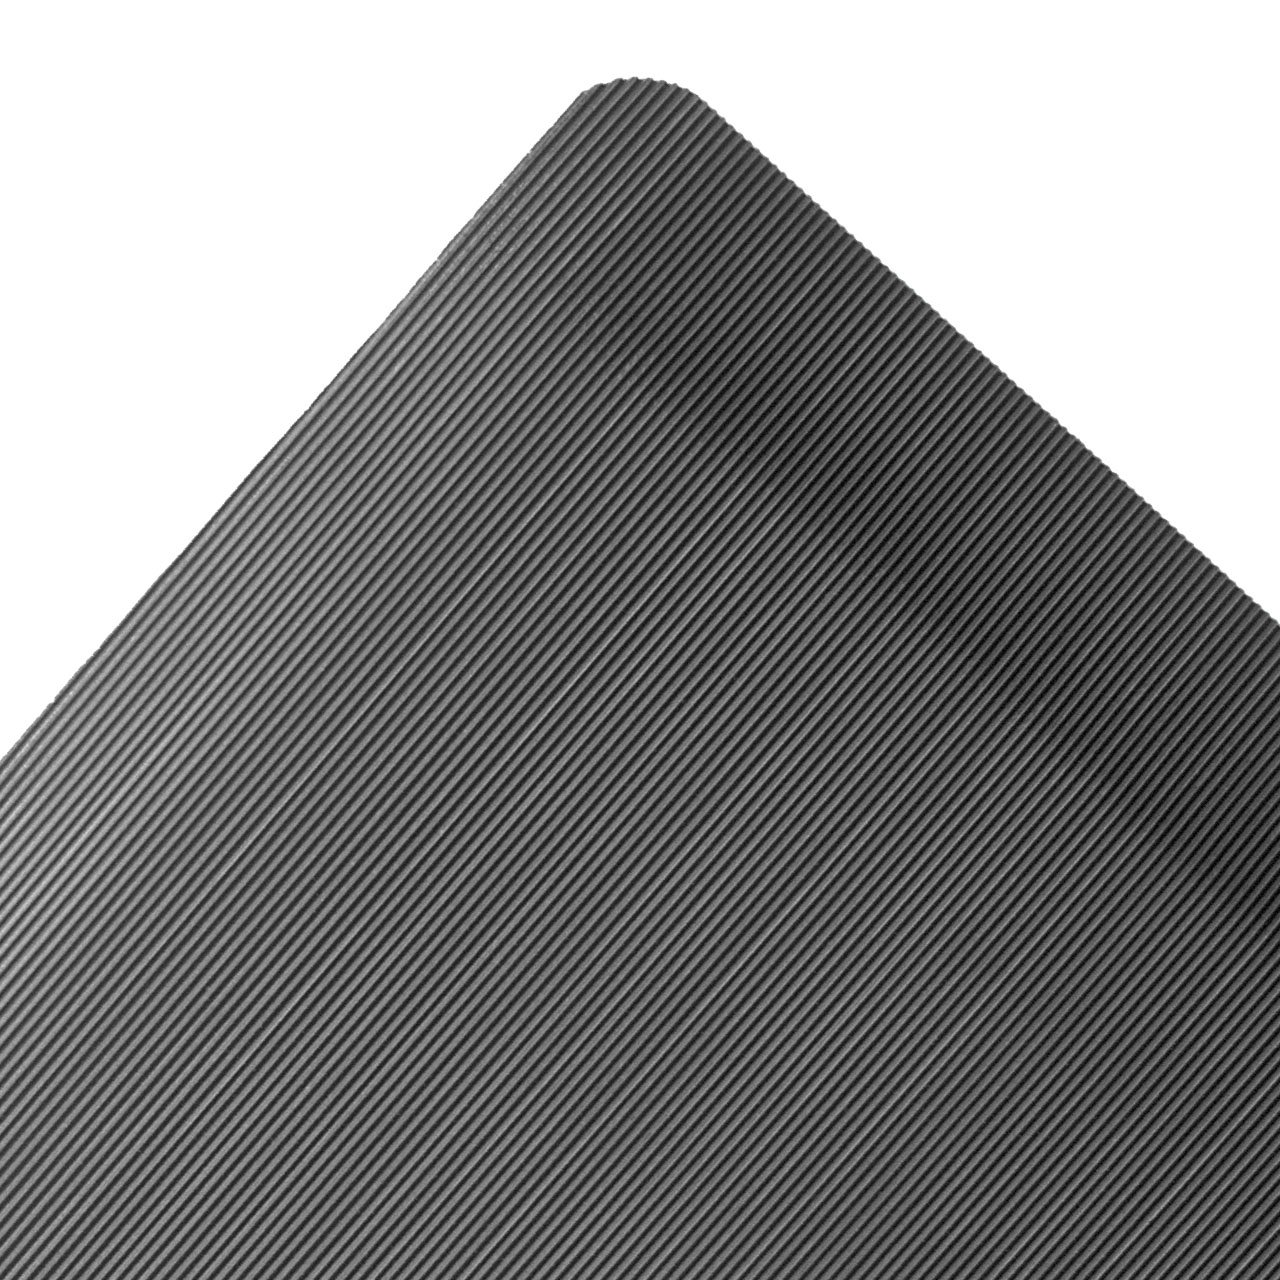 NoTrax Rubber 474 Ergo Anti-Fatigue Mat, for Dry Areas, 3' Width x 5' Length x 1/2'' Thickness, Black